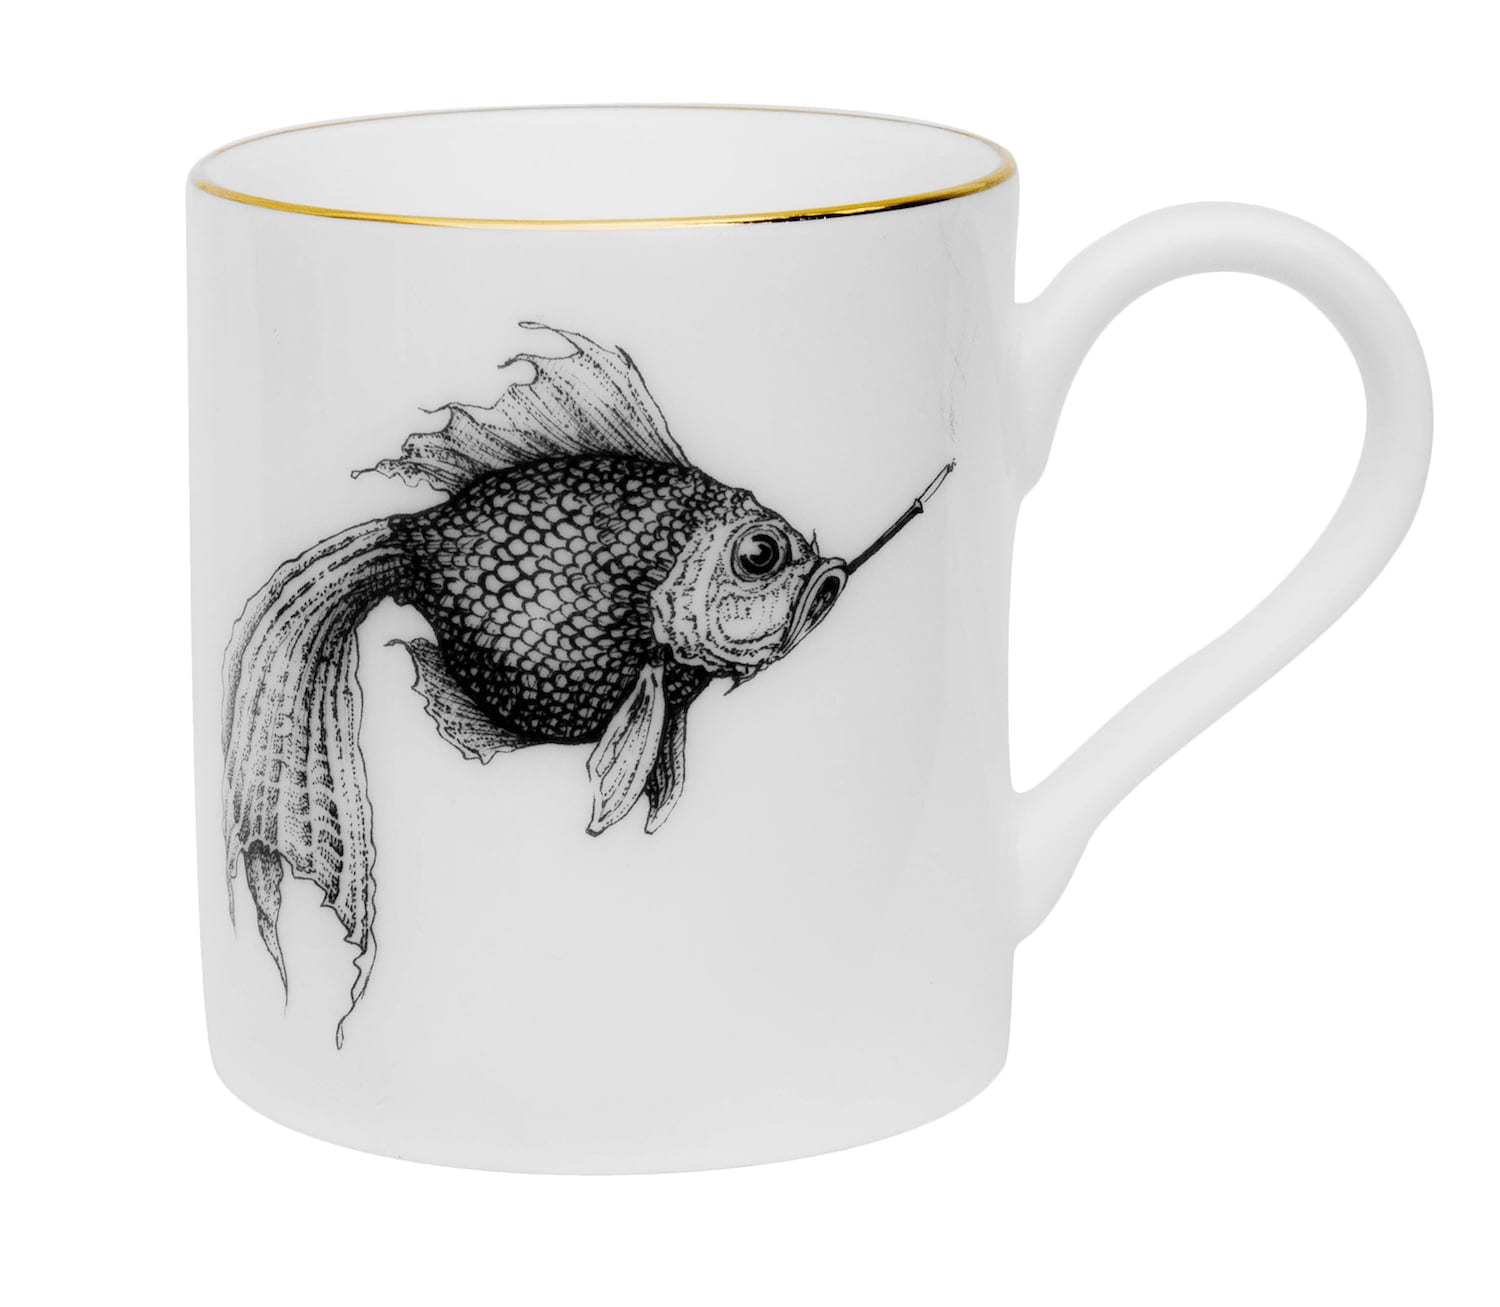 The images shows a fish smoking a cigarette. Done in black ink on a fine bone china mug